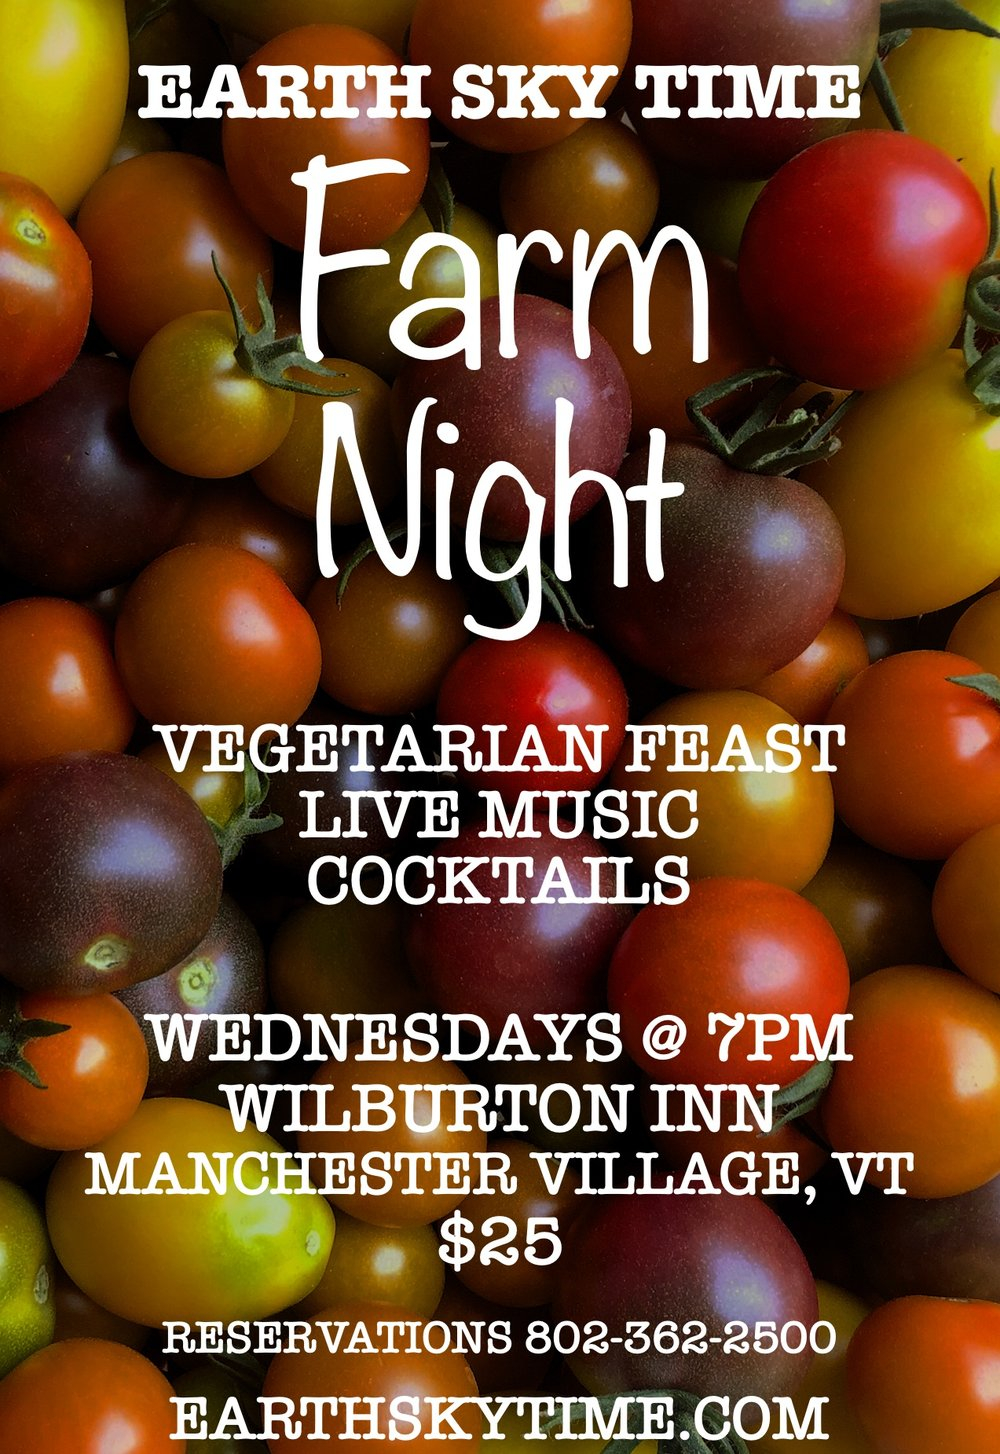 1 Farm night poster Oliver.jpg